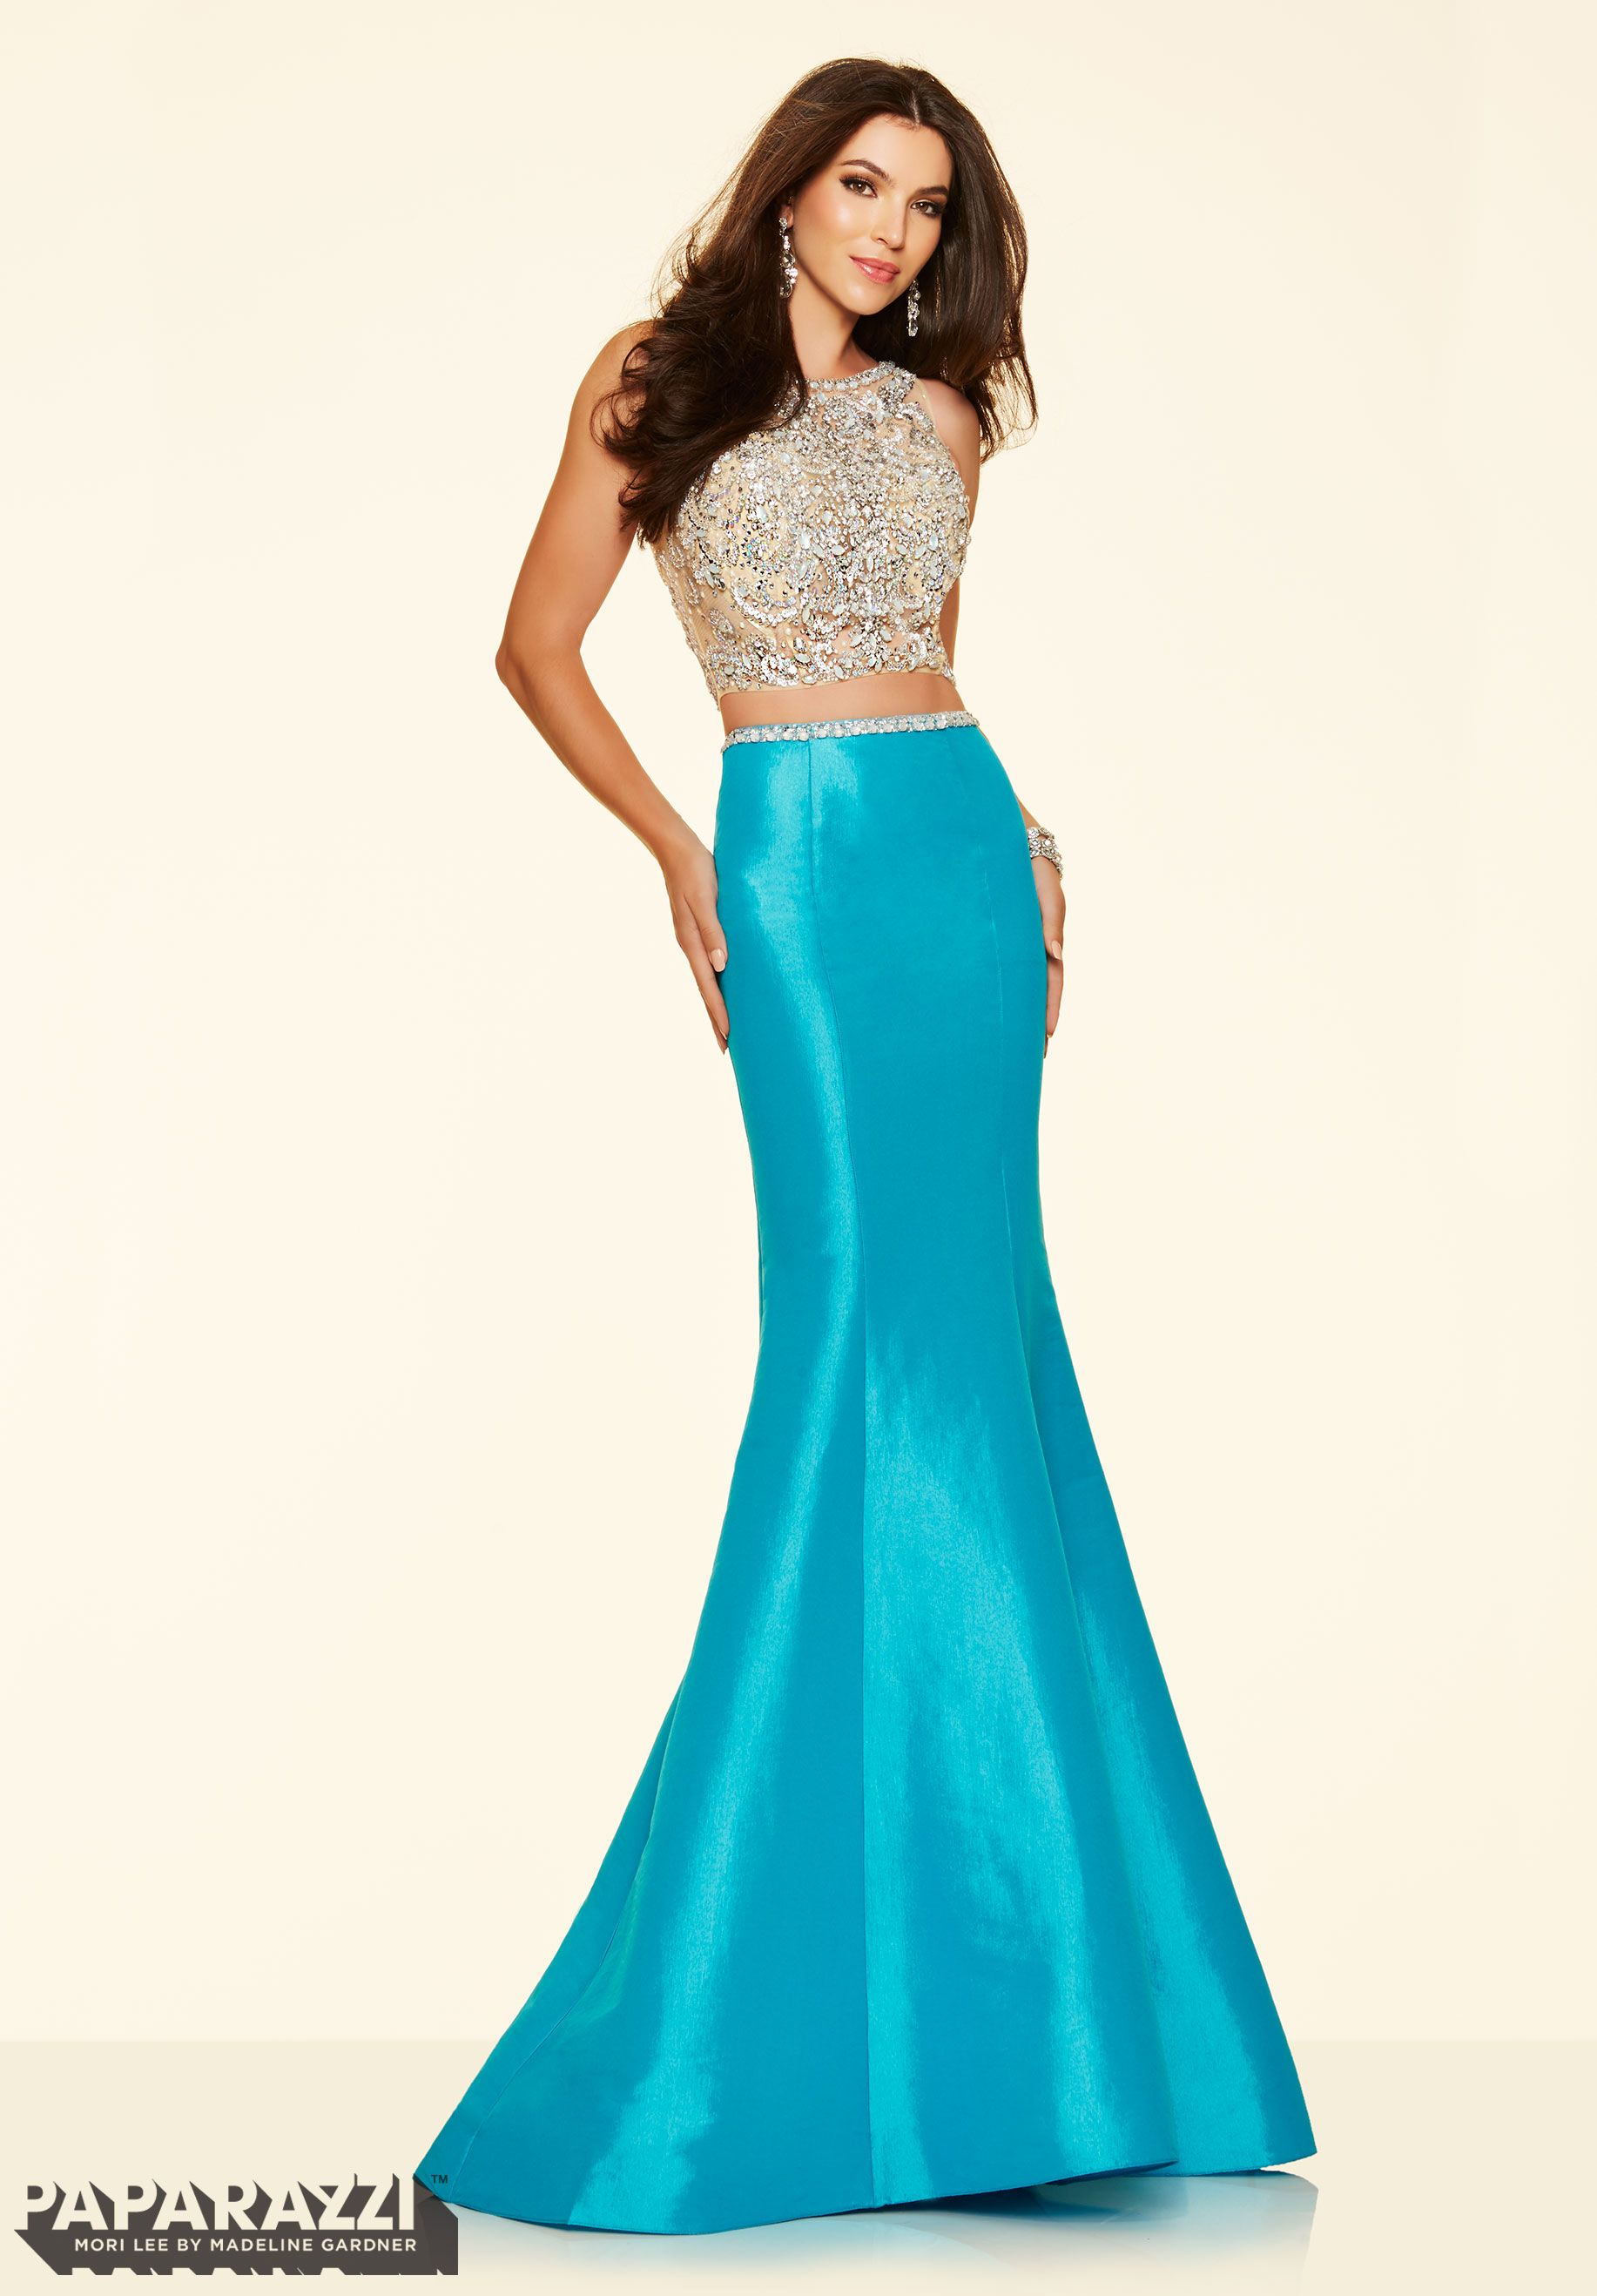 2 Piece Jeweled Beaded Net and Stretch Taffeta. Colors Available: White, Turquoise